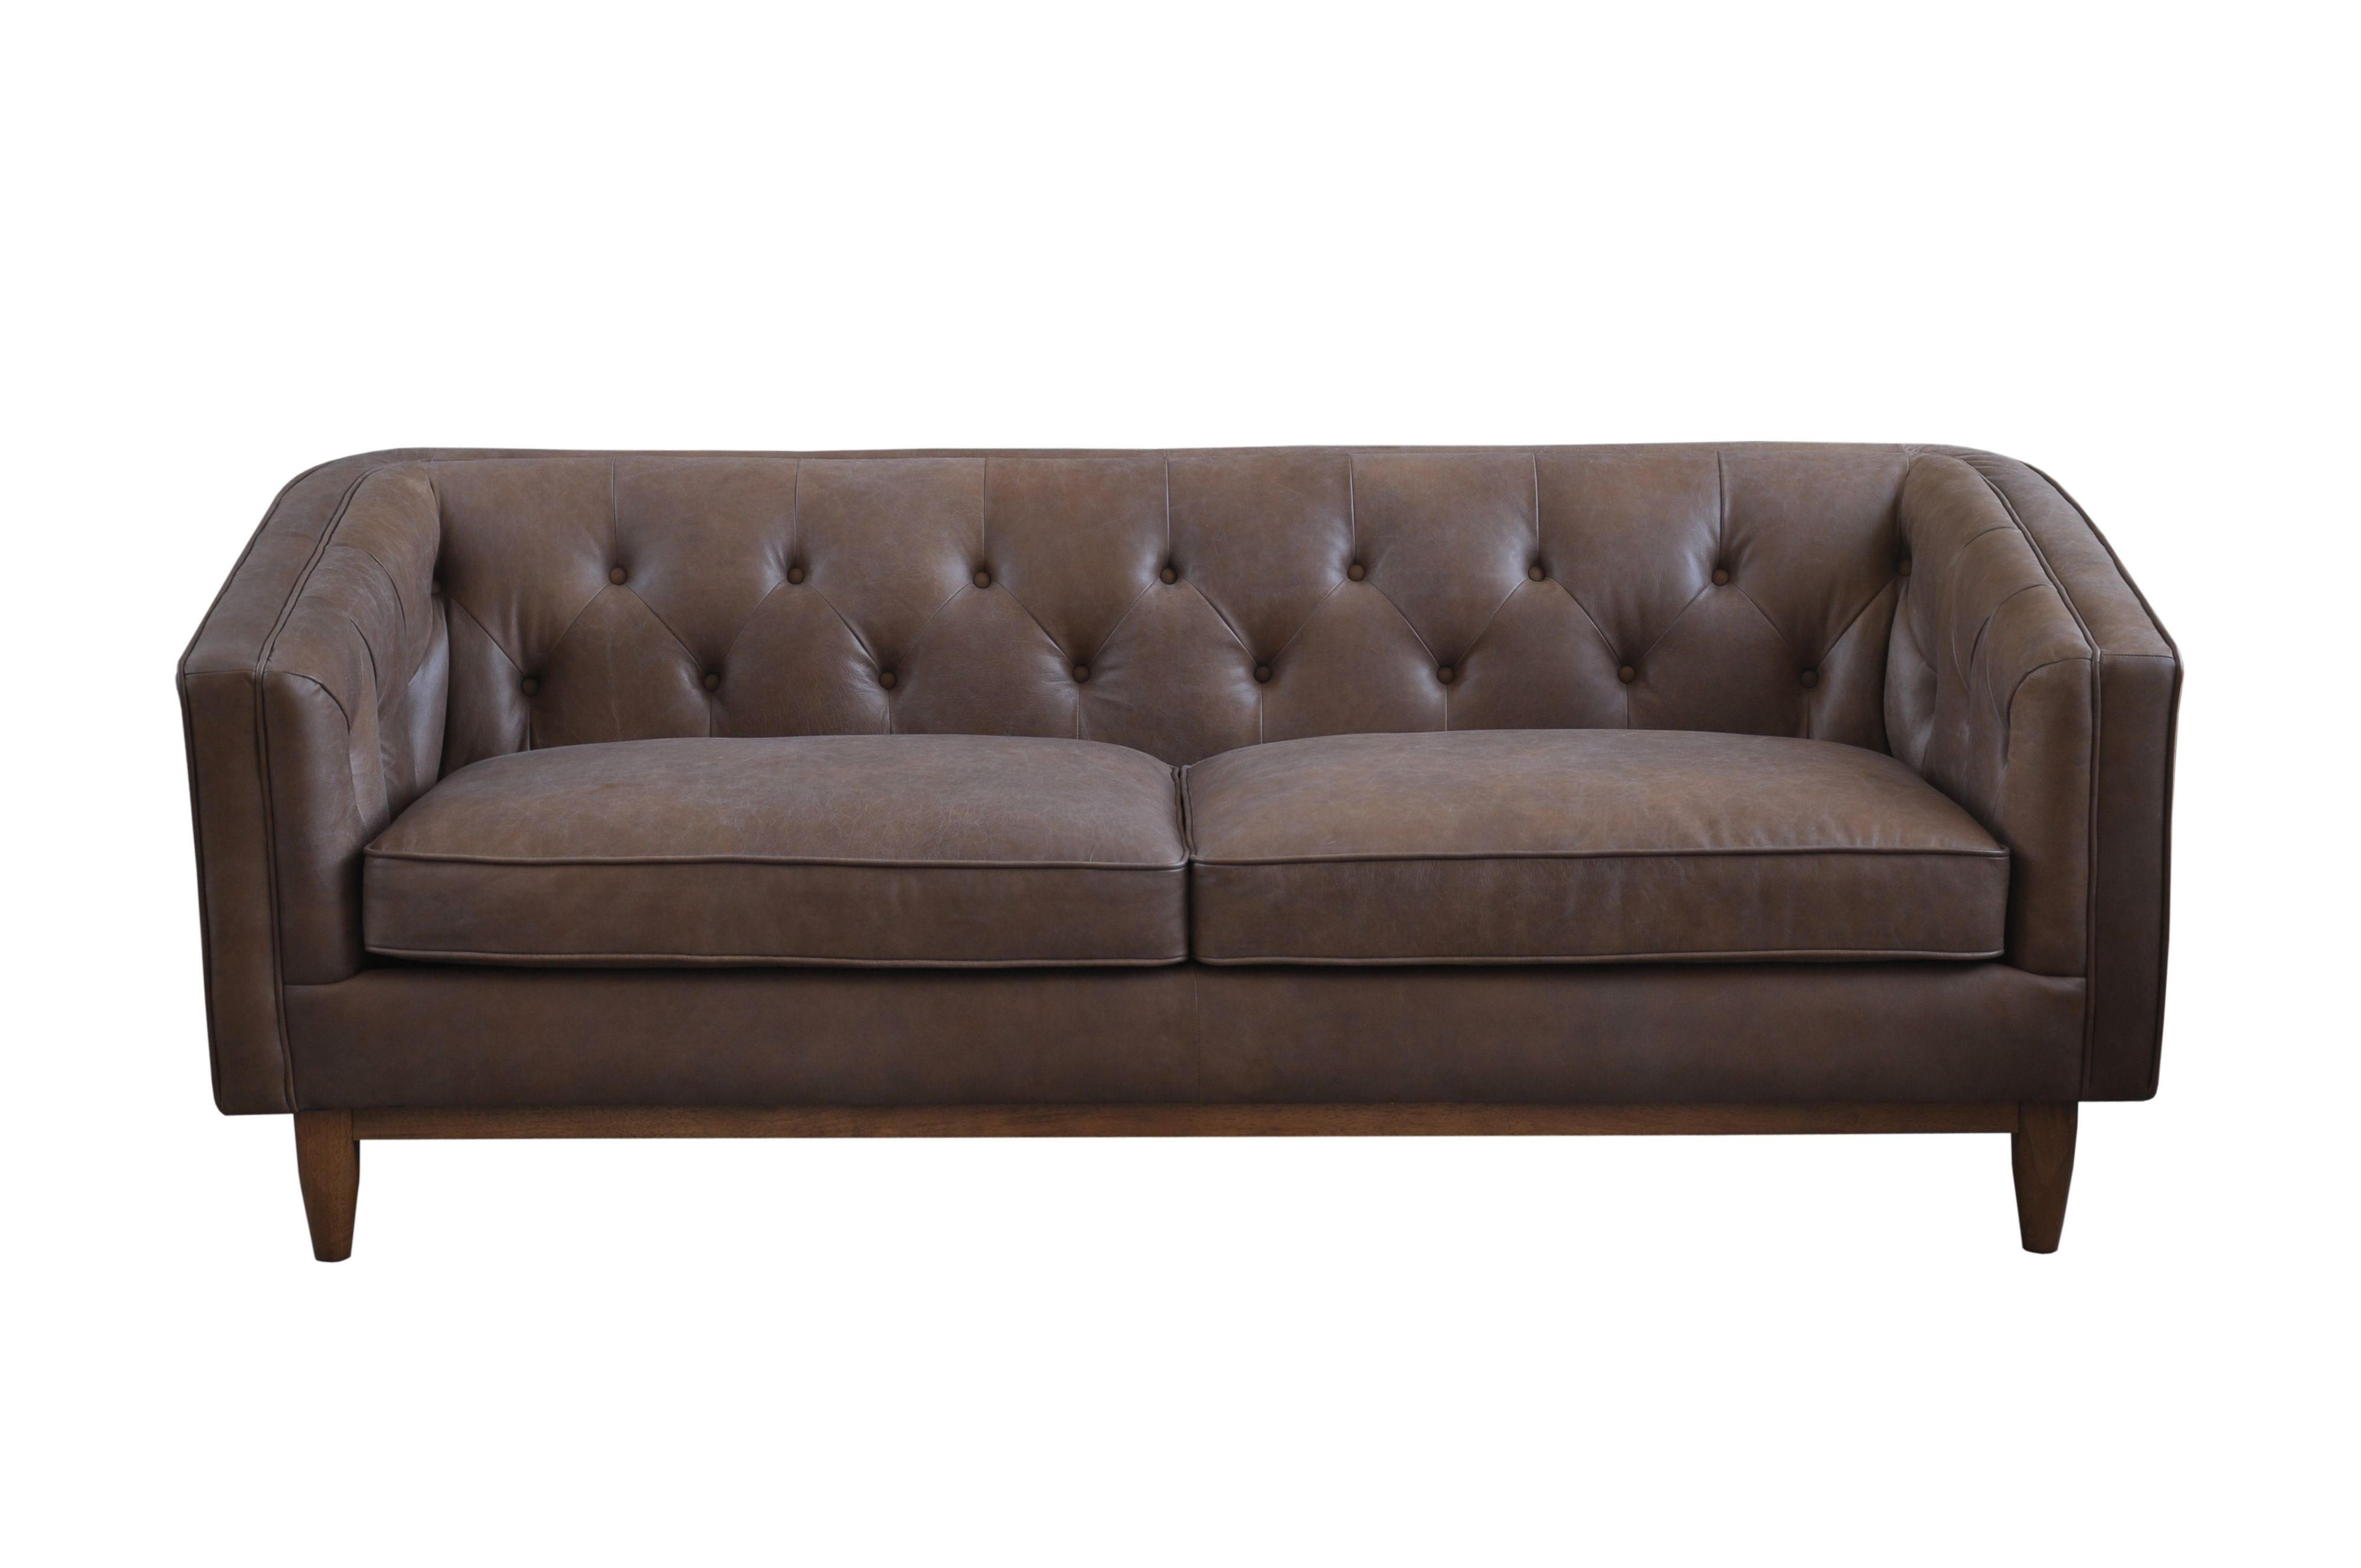 House Of Fraser Sofa Steal House Of Fraser Leather Sofa Beds - Sofa The Honoroak